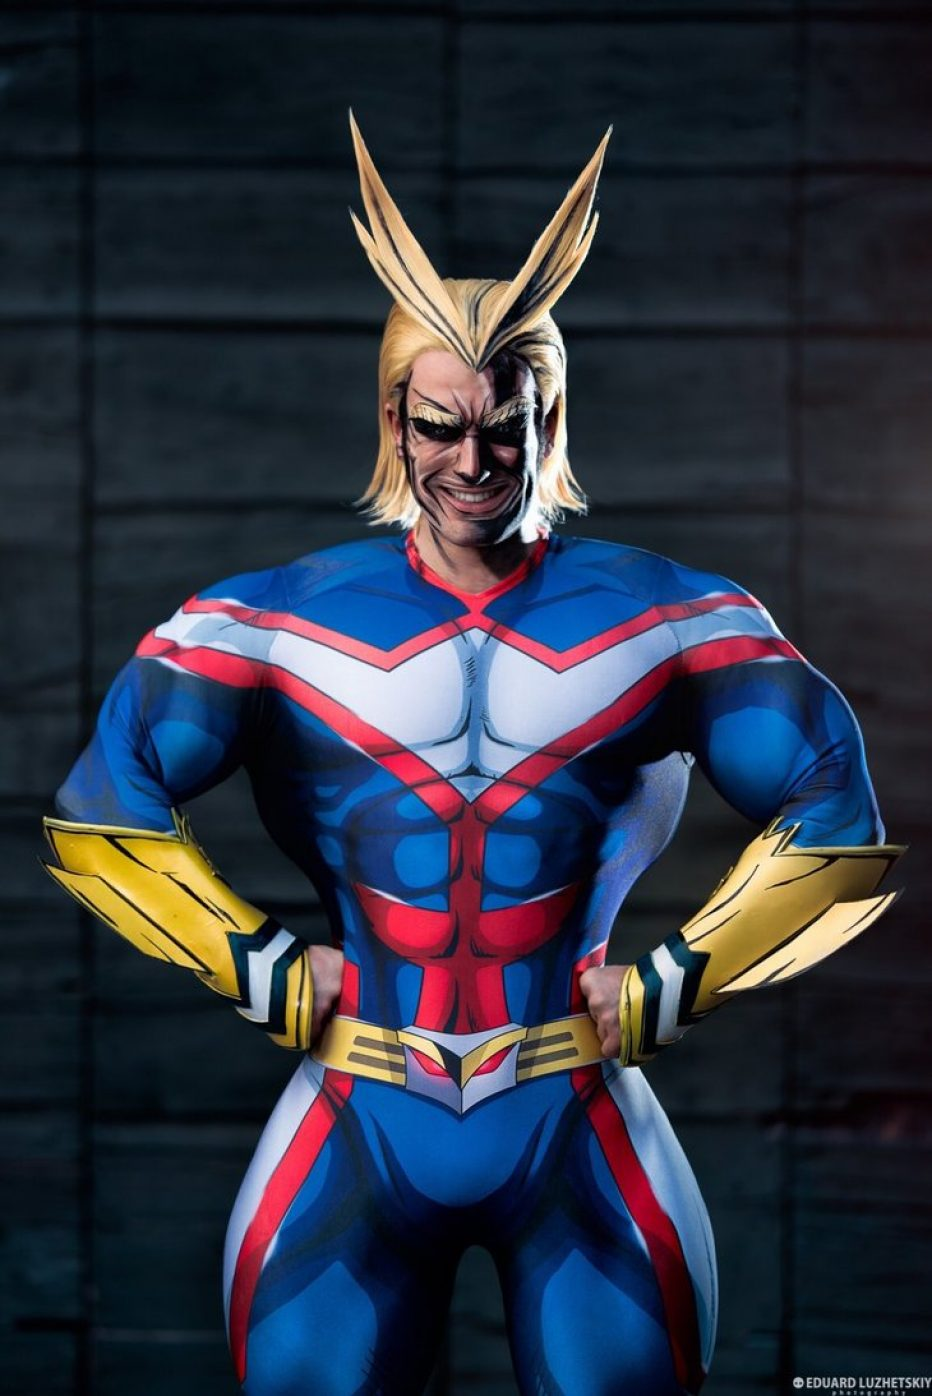 My-Hero-Academia-All-Might-Cosplay-Gamers-Heroes-3.jpg